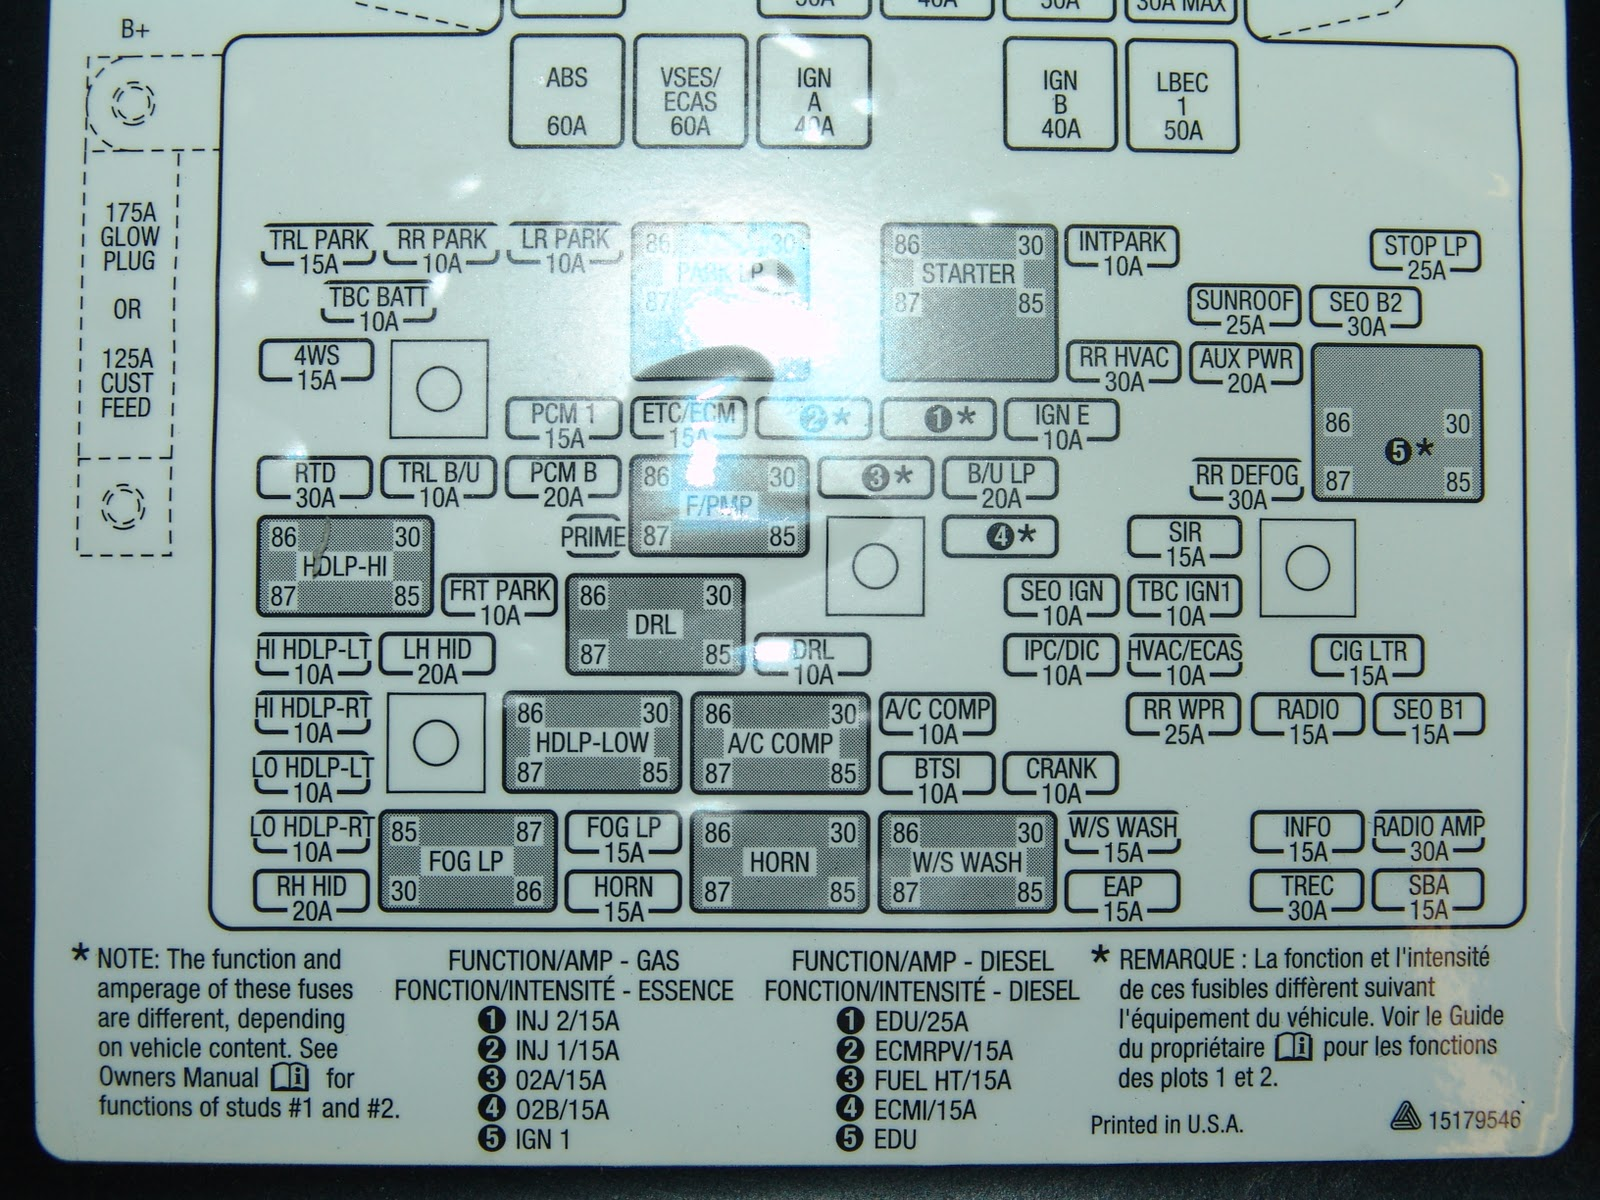 2005 Chevy Suburban Fuse Box Diagram Trusted Wiring Diagrams Aveo Panel For Image Details 4x4